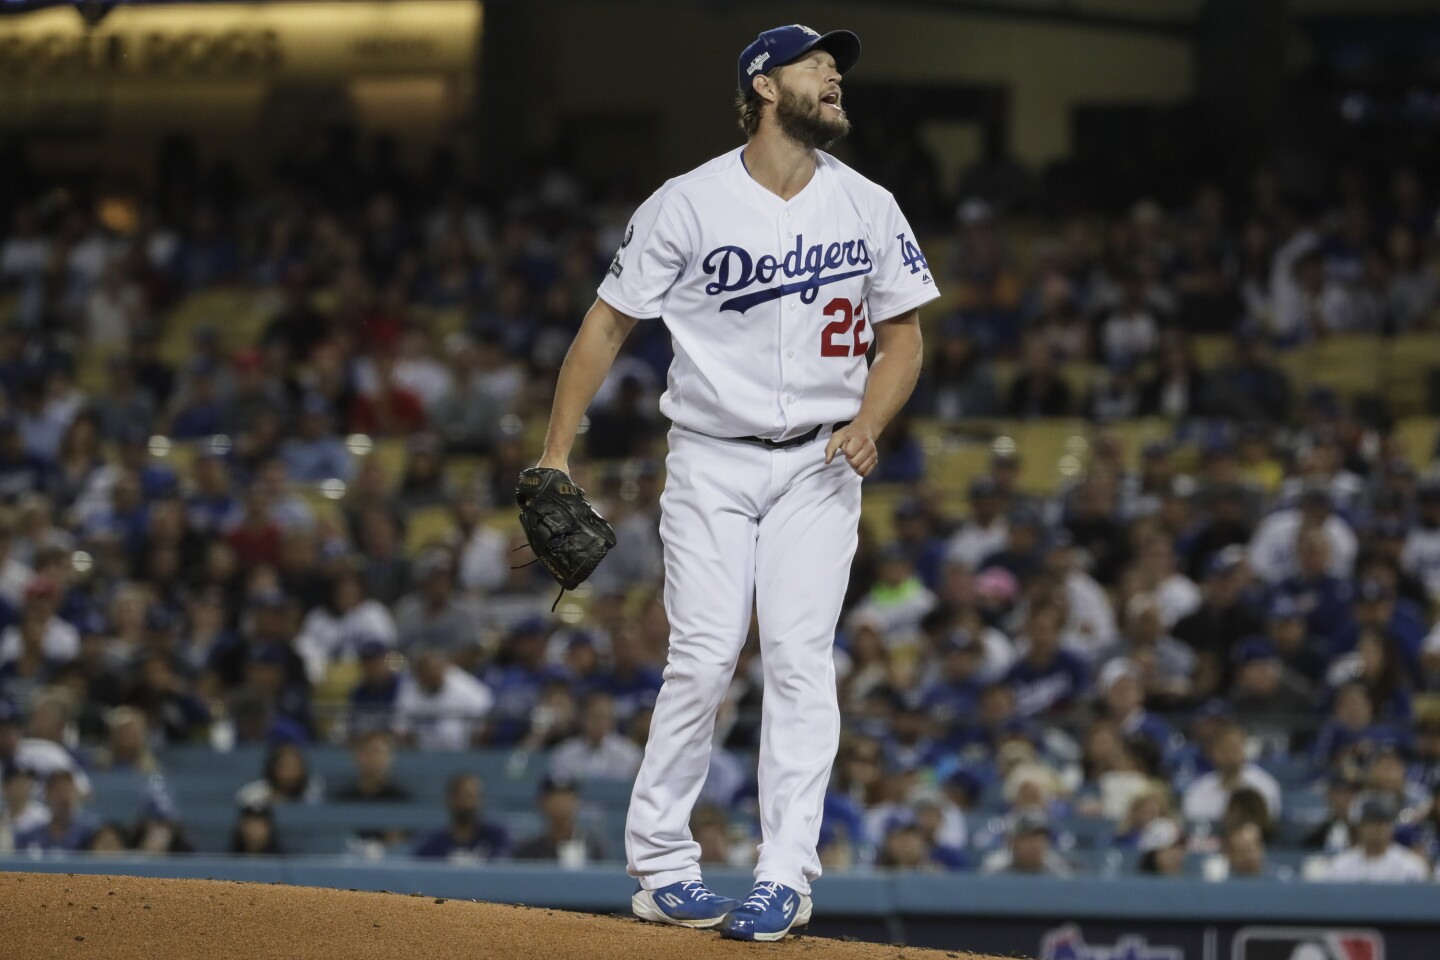 LOS ANGELES, CA, FRIDAY, OCTOBER 4, 2019 - Los Angeles Dodgers starting pitcher Clayton Kershaw (22) grimaces after hitting Nationals hitter Juan Soto in the first inning in game two of the National League Division Series at Dodger Stadium. (Robert Gauthier/Los Angeles Times)